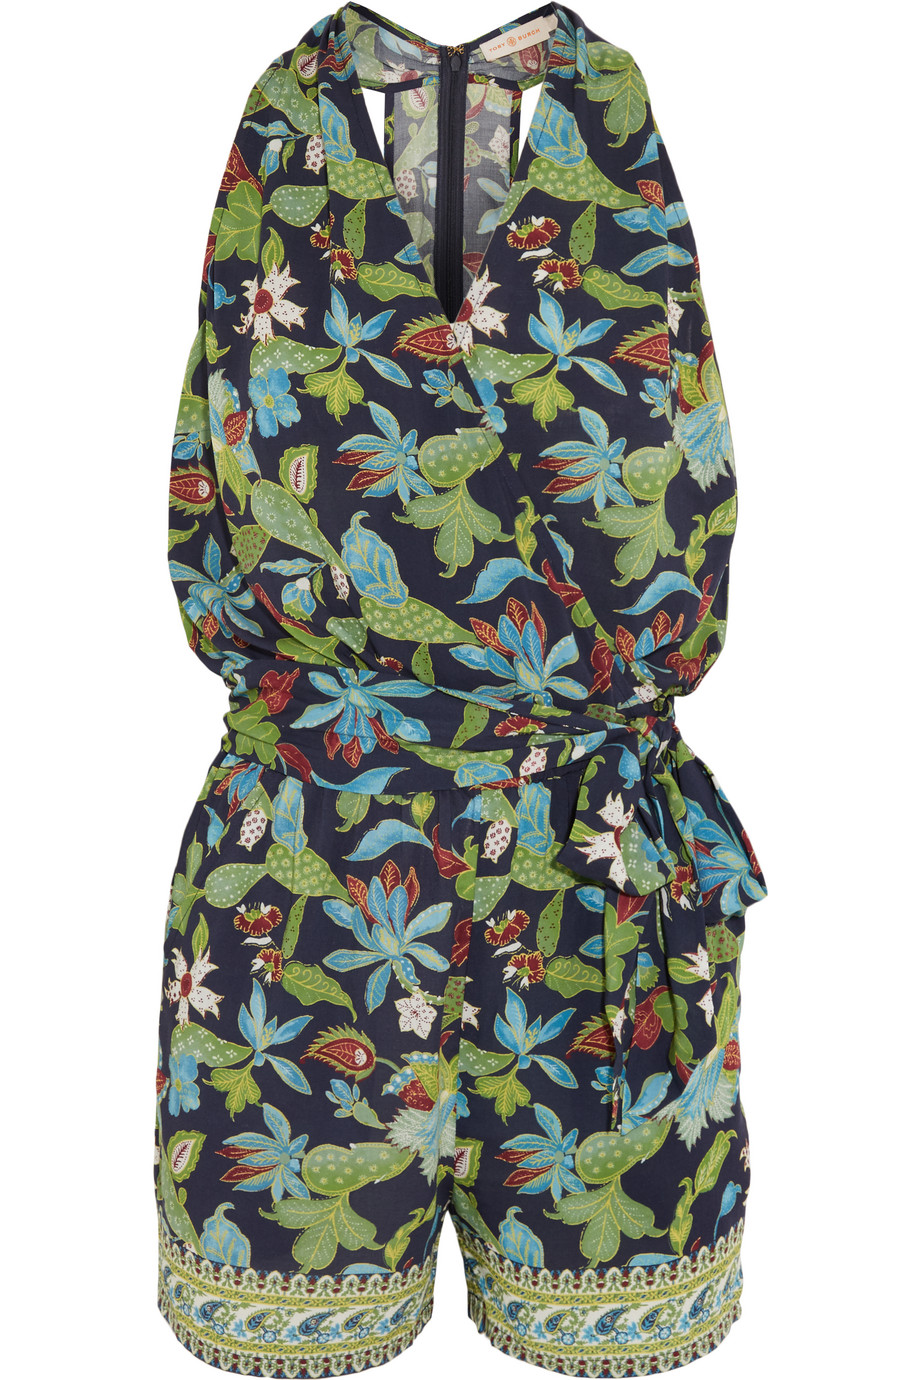 Tory Burch Printed Jersey Wrap Playsuit, Forest Green, Women's, Size: M